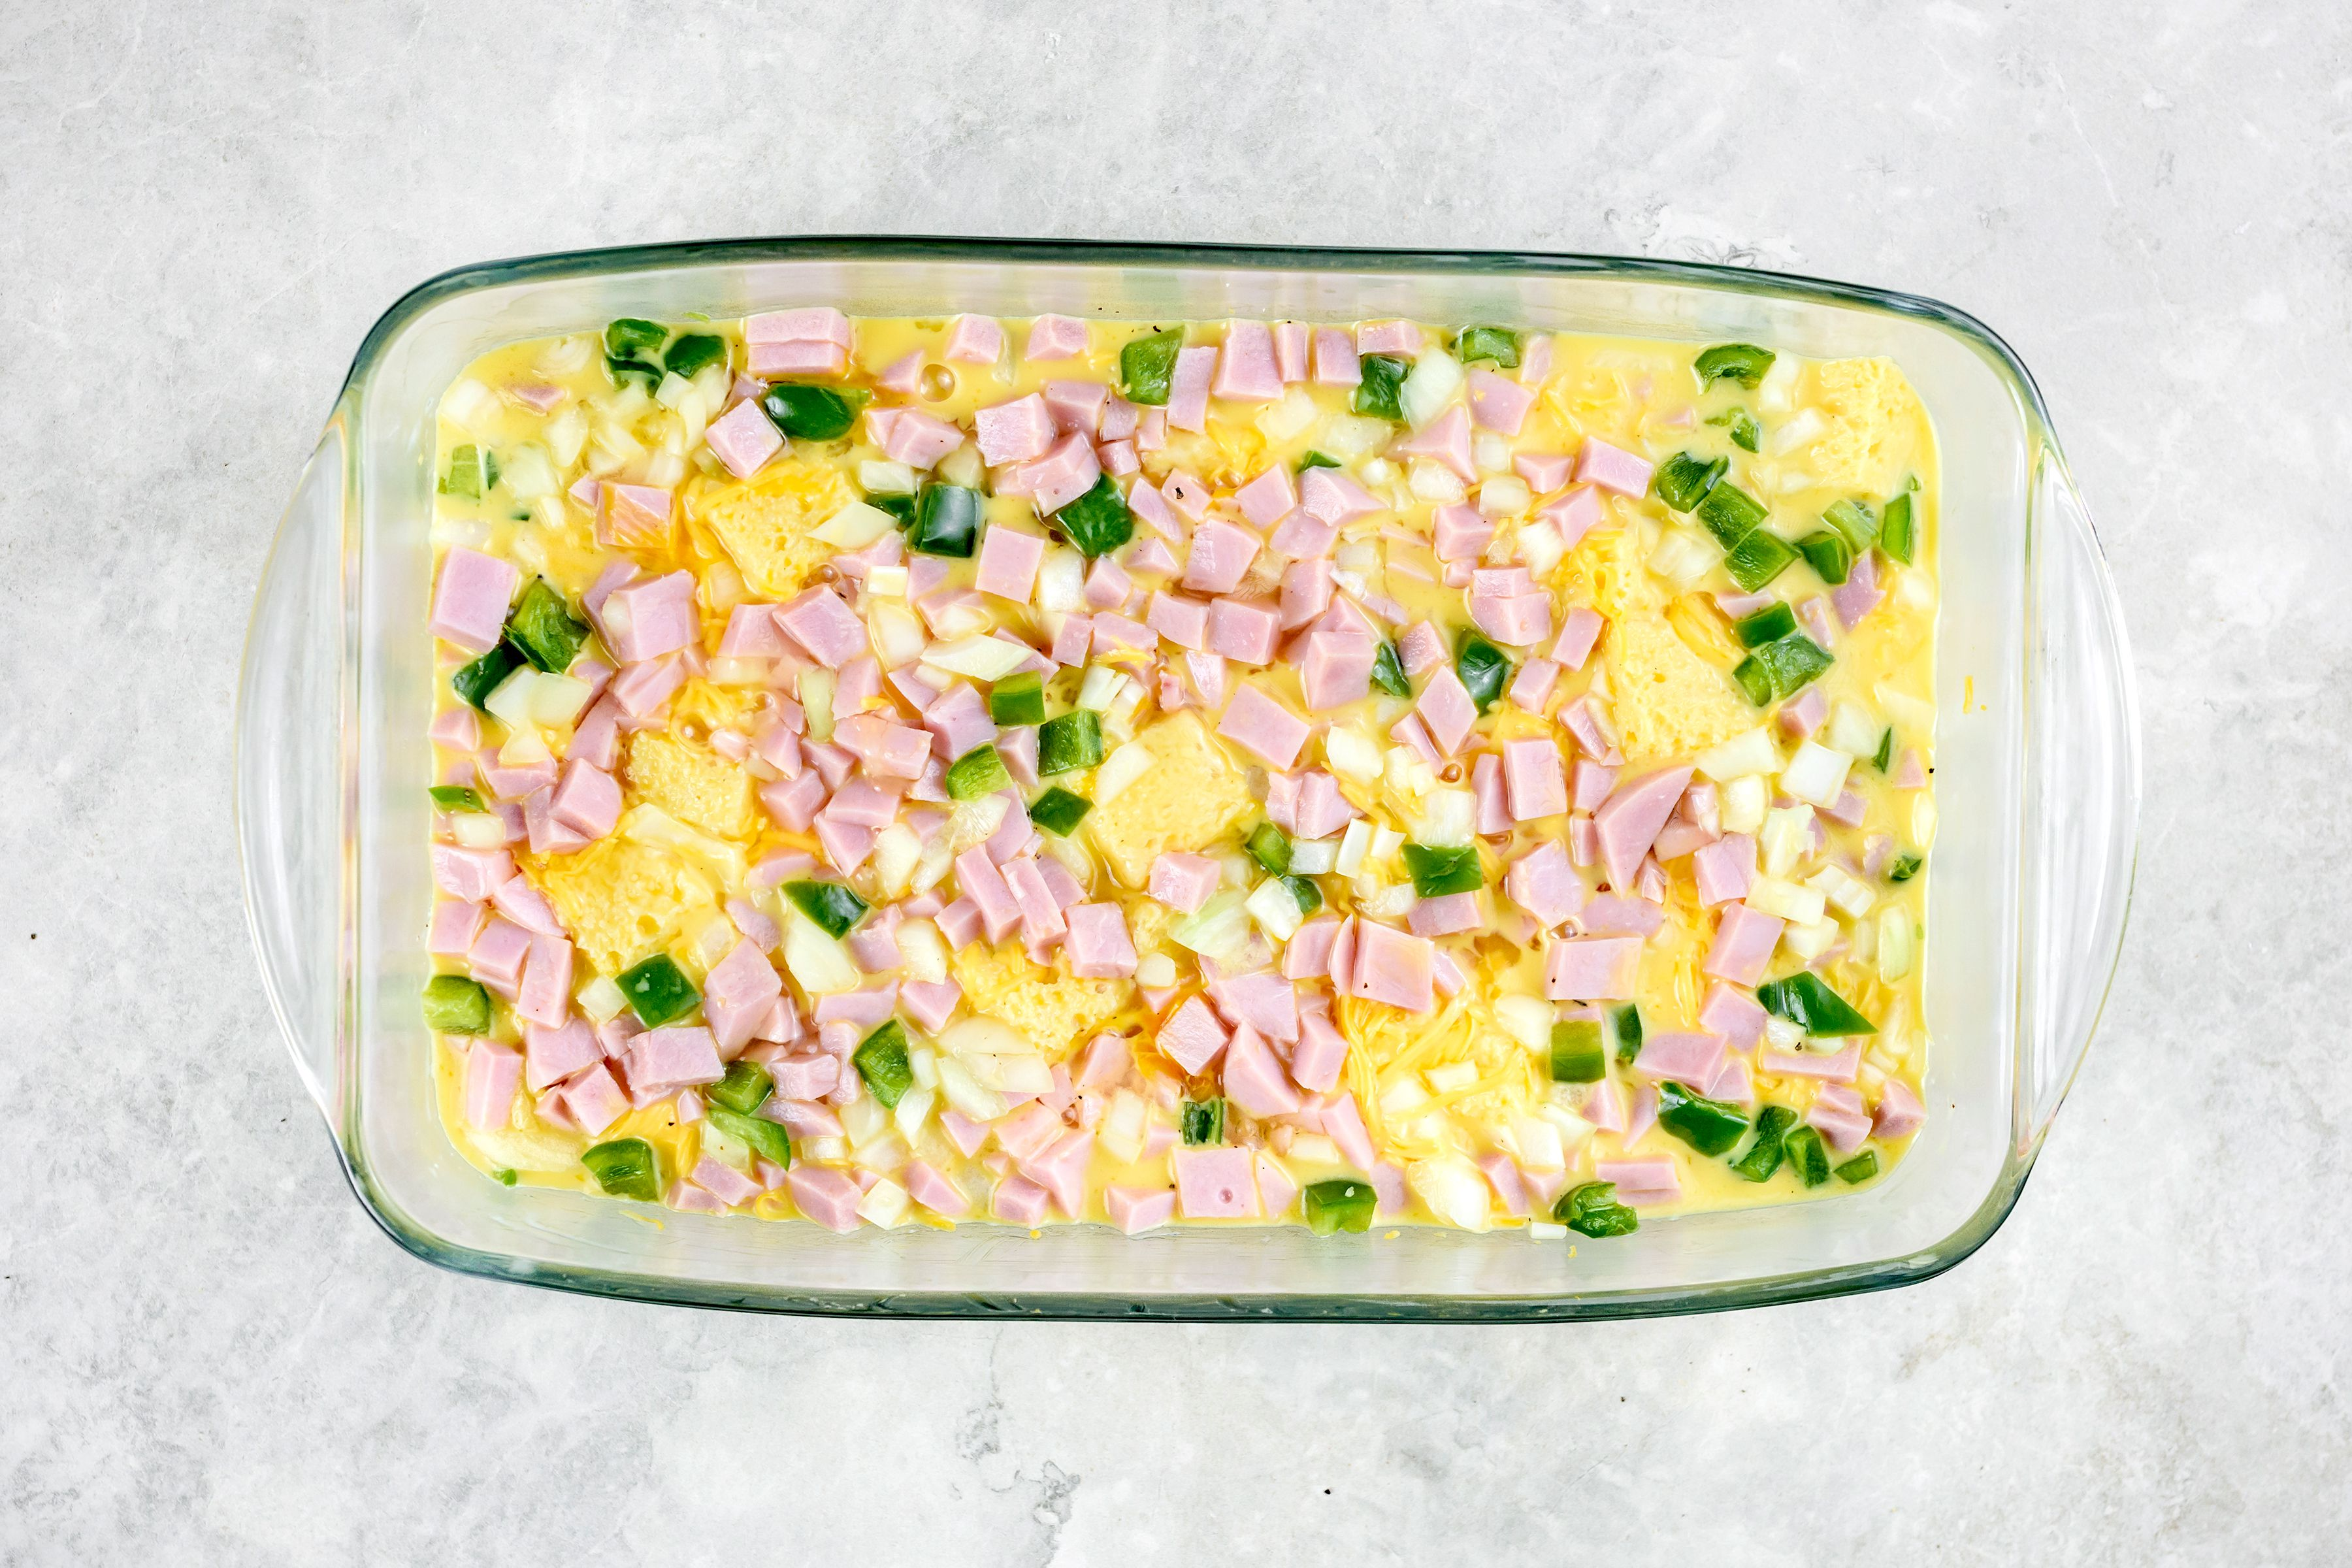 Western ham and egg casserole in baking dish